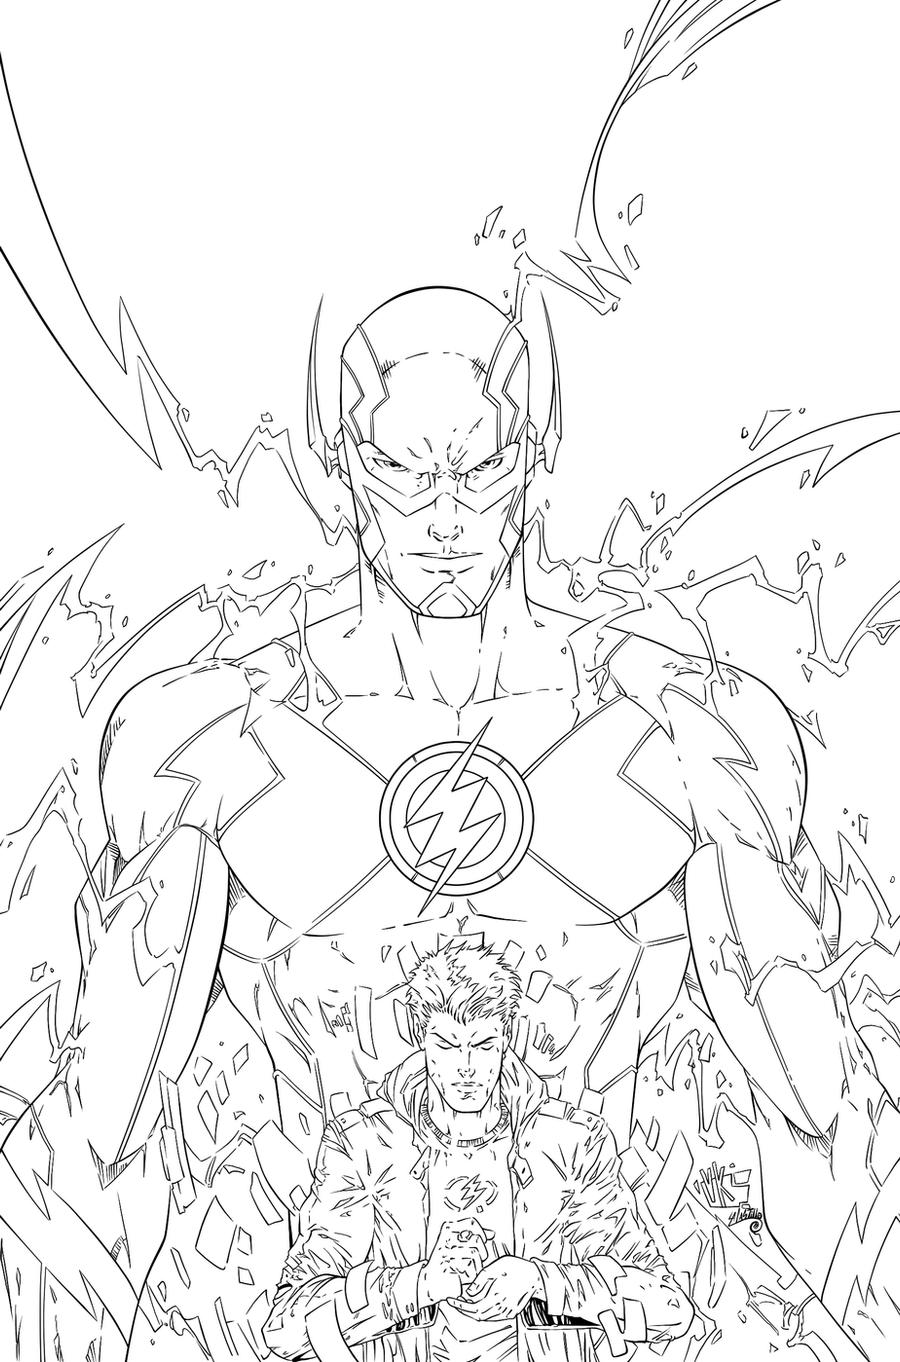 The Flash Ink 3 By Swave18 On Deviantart The Flash Coloring Pages